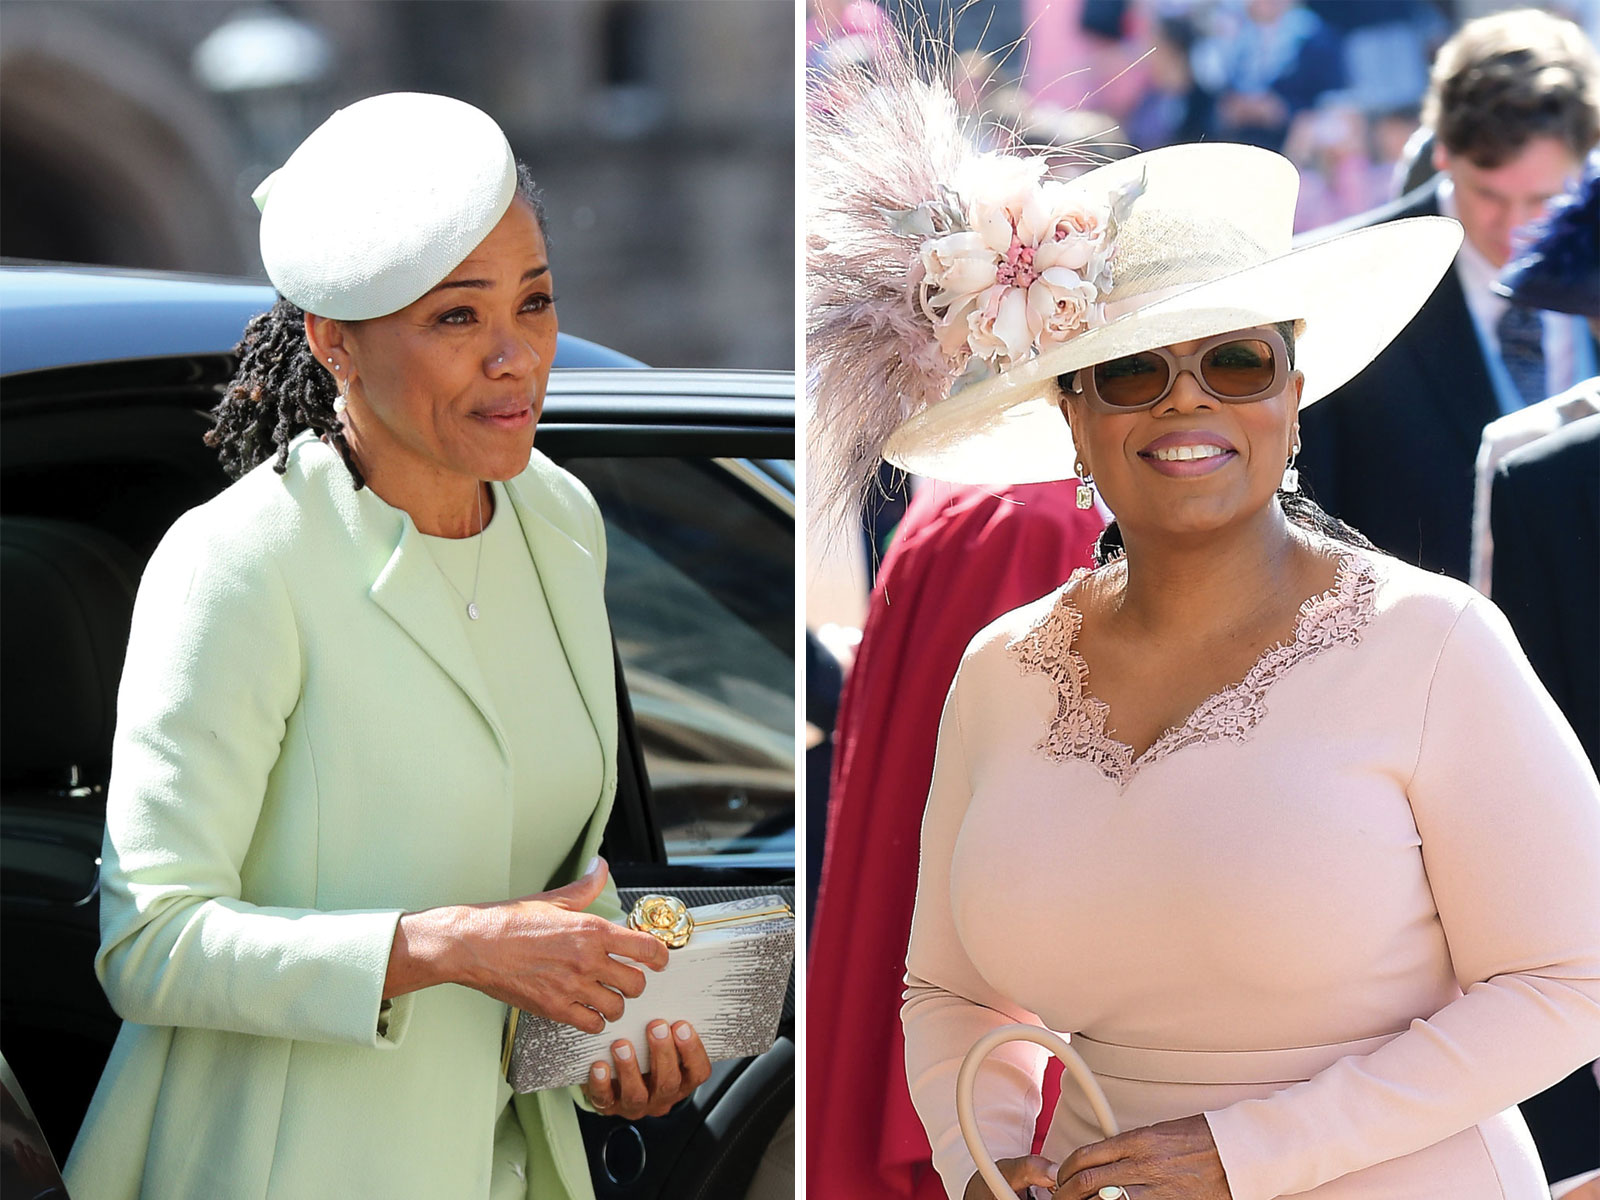 Oprah Winfrey and Doria Ragland at the wedding of Meghan Markle and Prince Harry